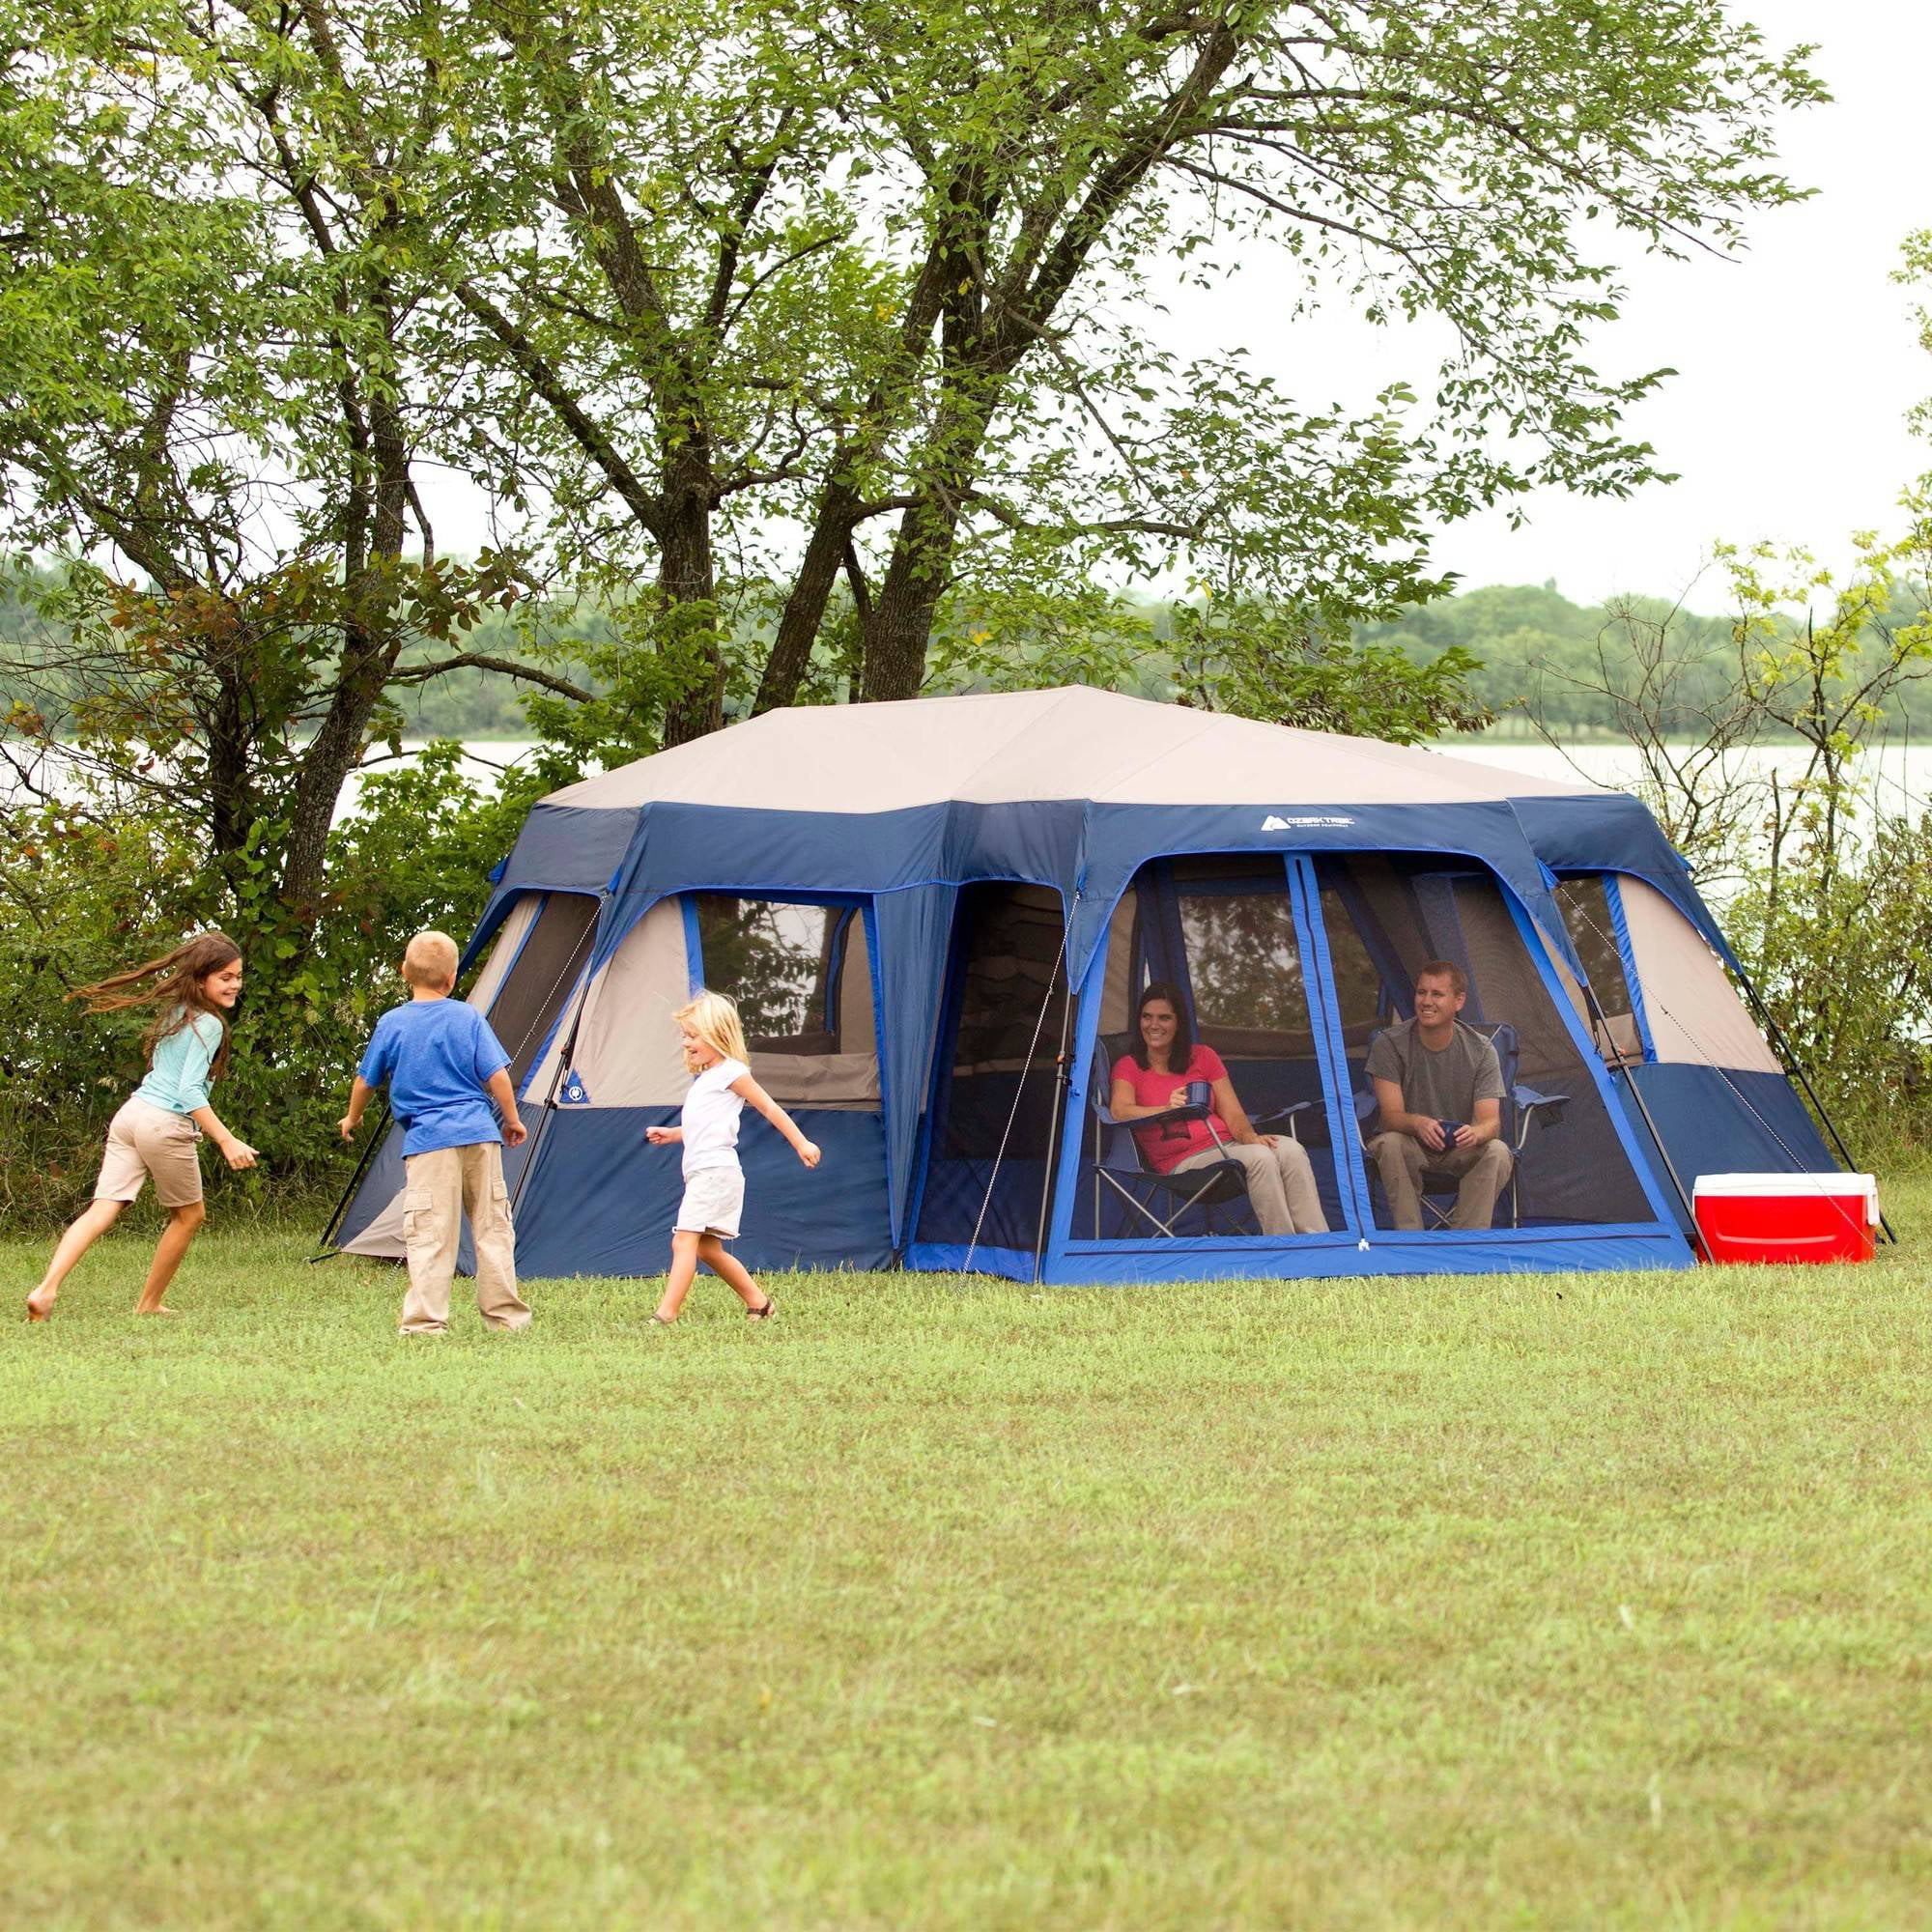 Ozark Trail 12 Person 2 Room Instant Cabin Tent with Screen Room - Walmart.com & Ozark Trail 12 Person 2 Room Instant Cabin Tent with Screen Room ...